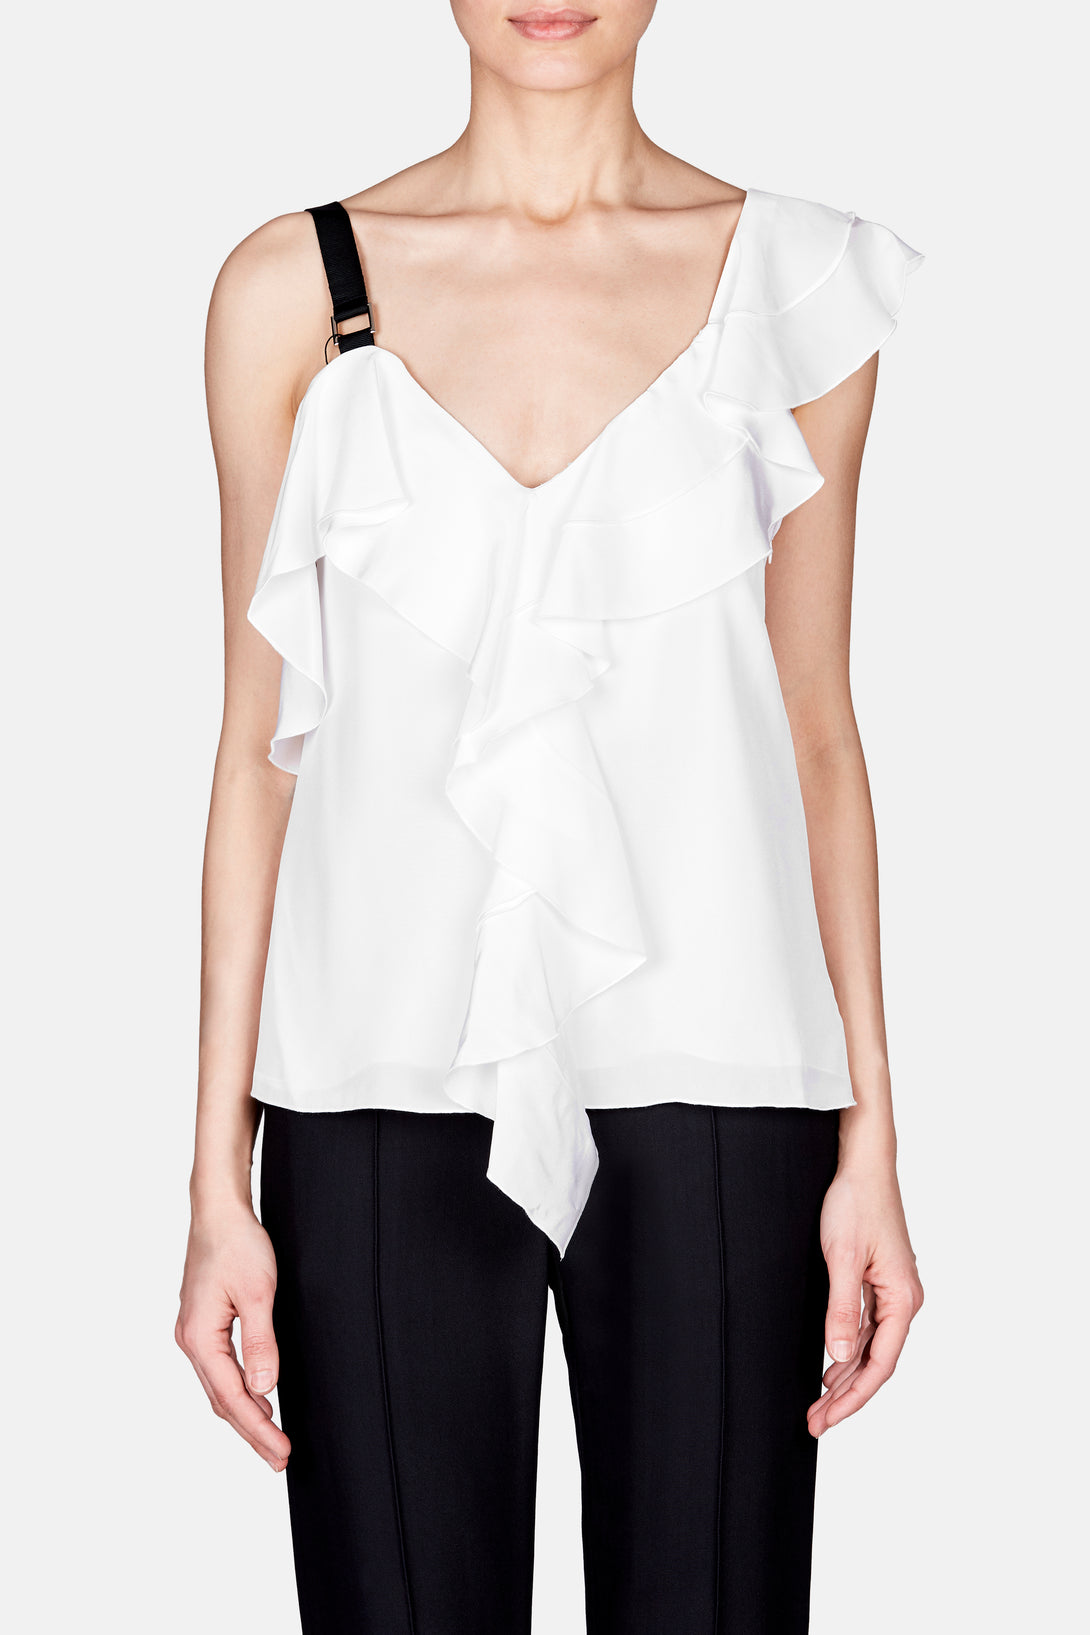 One Shoulder Ruffle Top - White